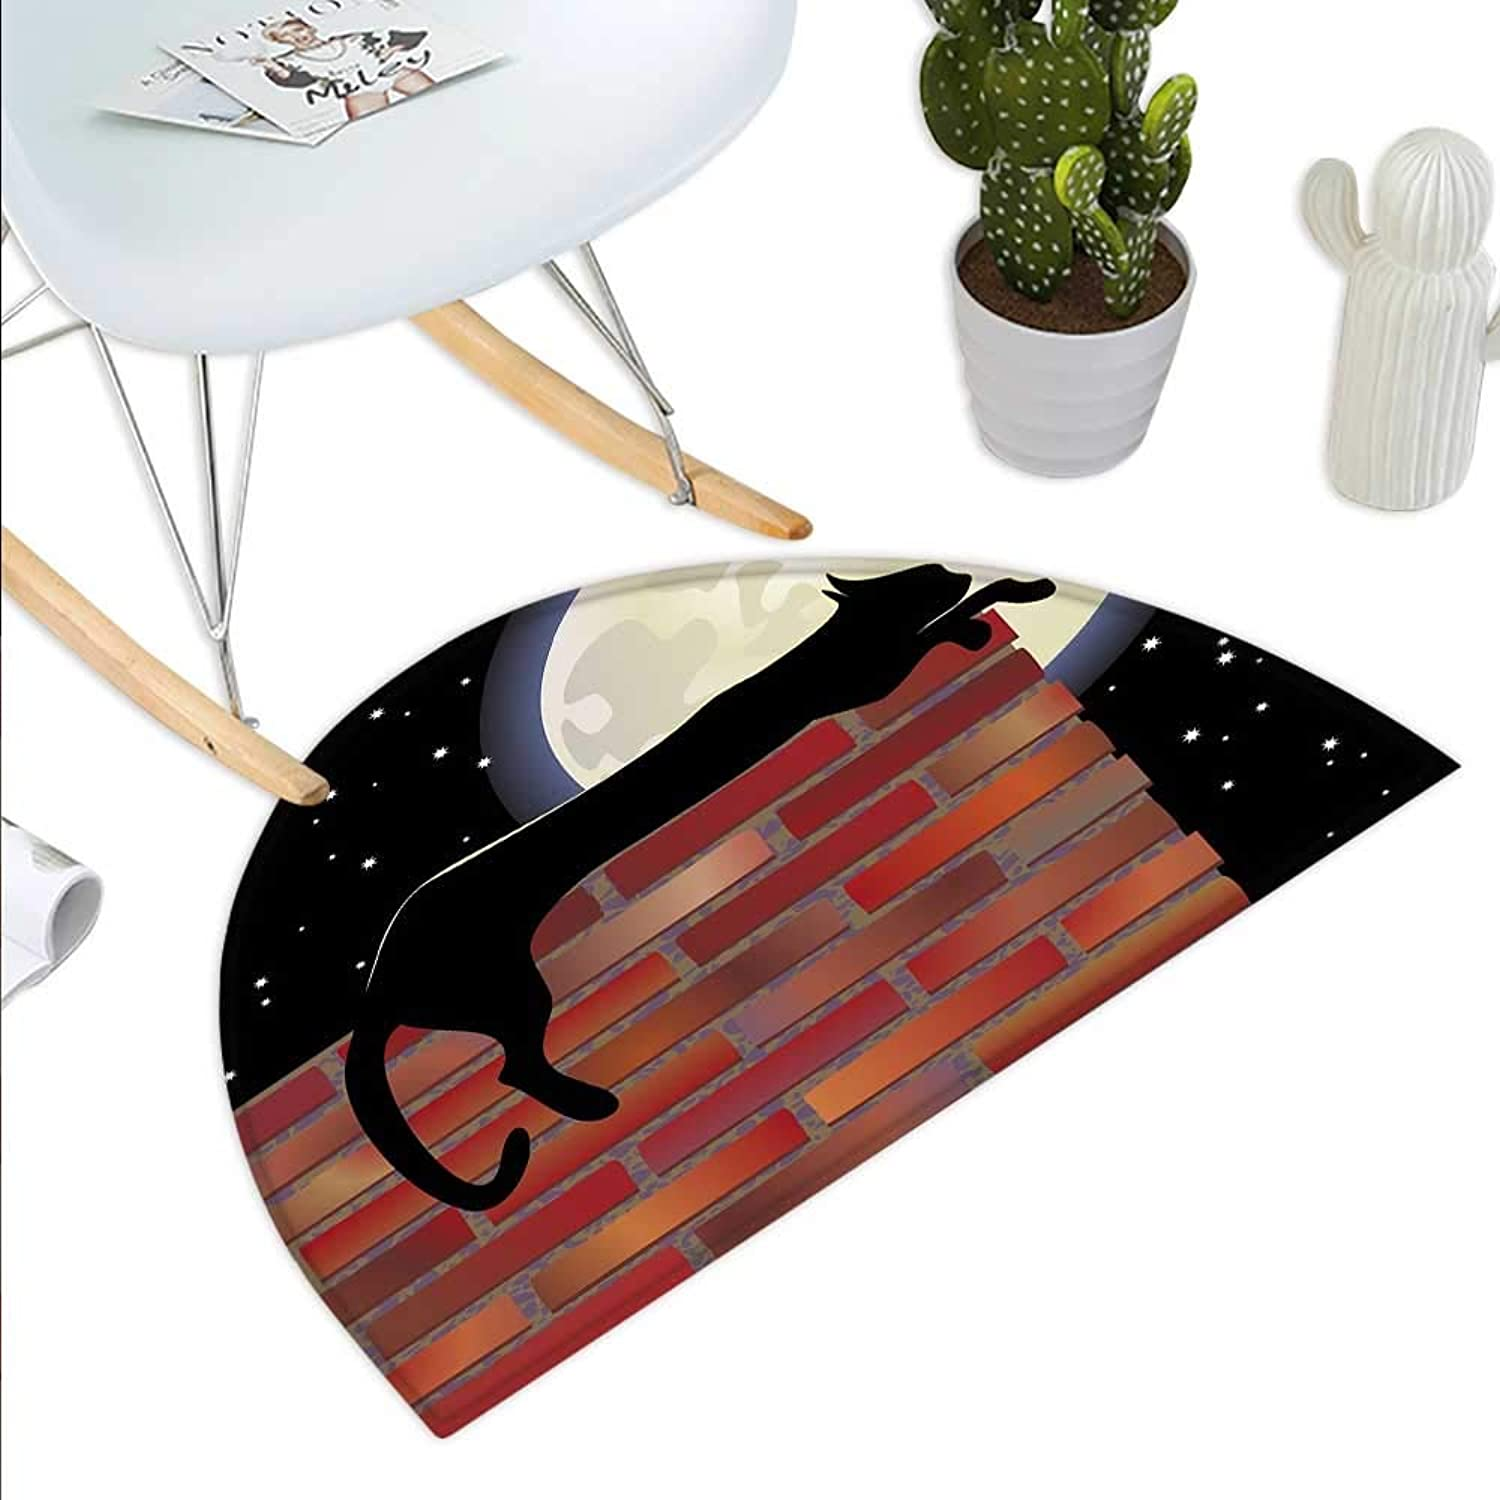 Moon Semicircle Doormat Cat Silhouette Resting on a Brick Wall in a Starry Night Full Moon Imagery Halfmoon doormats H 43.3  xD 64.9  Black Ivory Vermilion